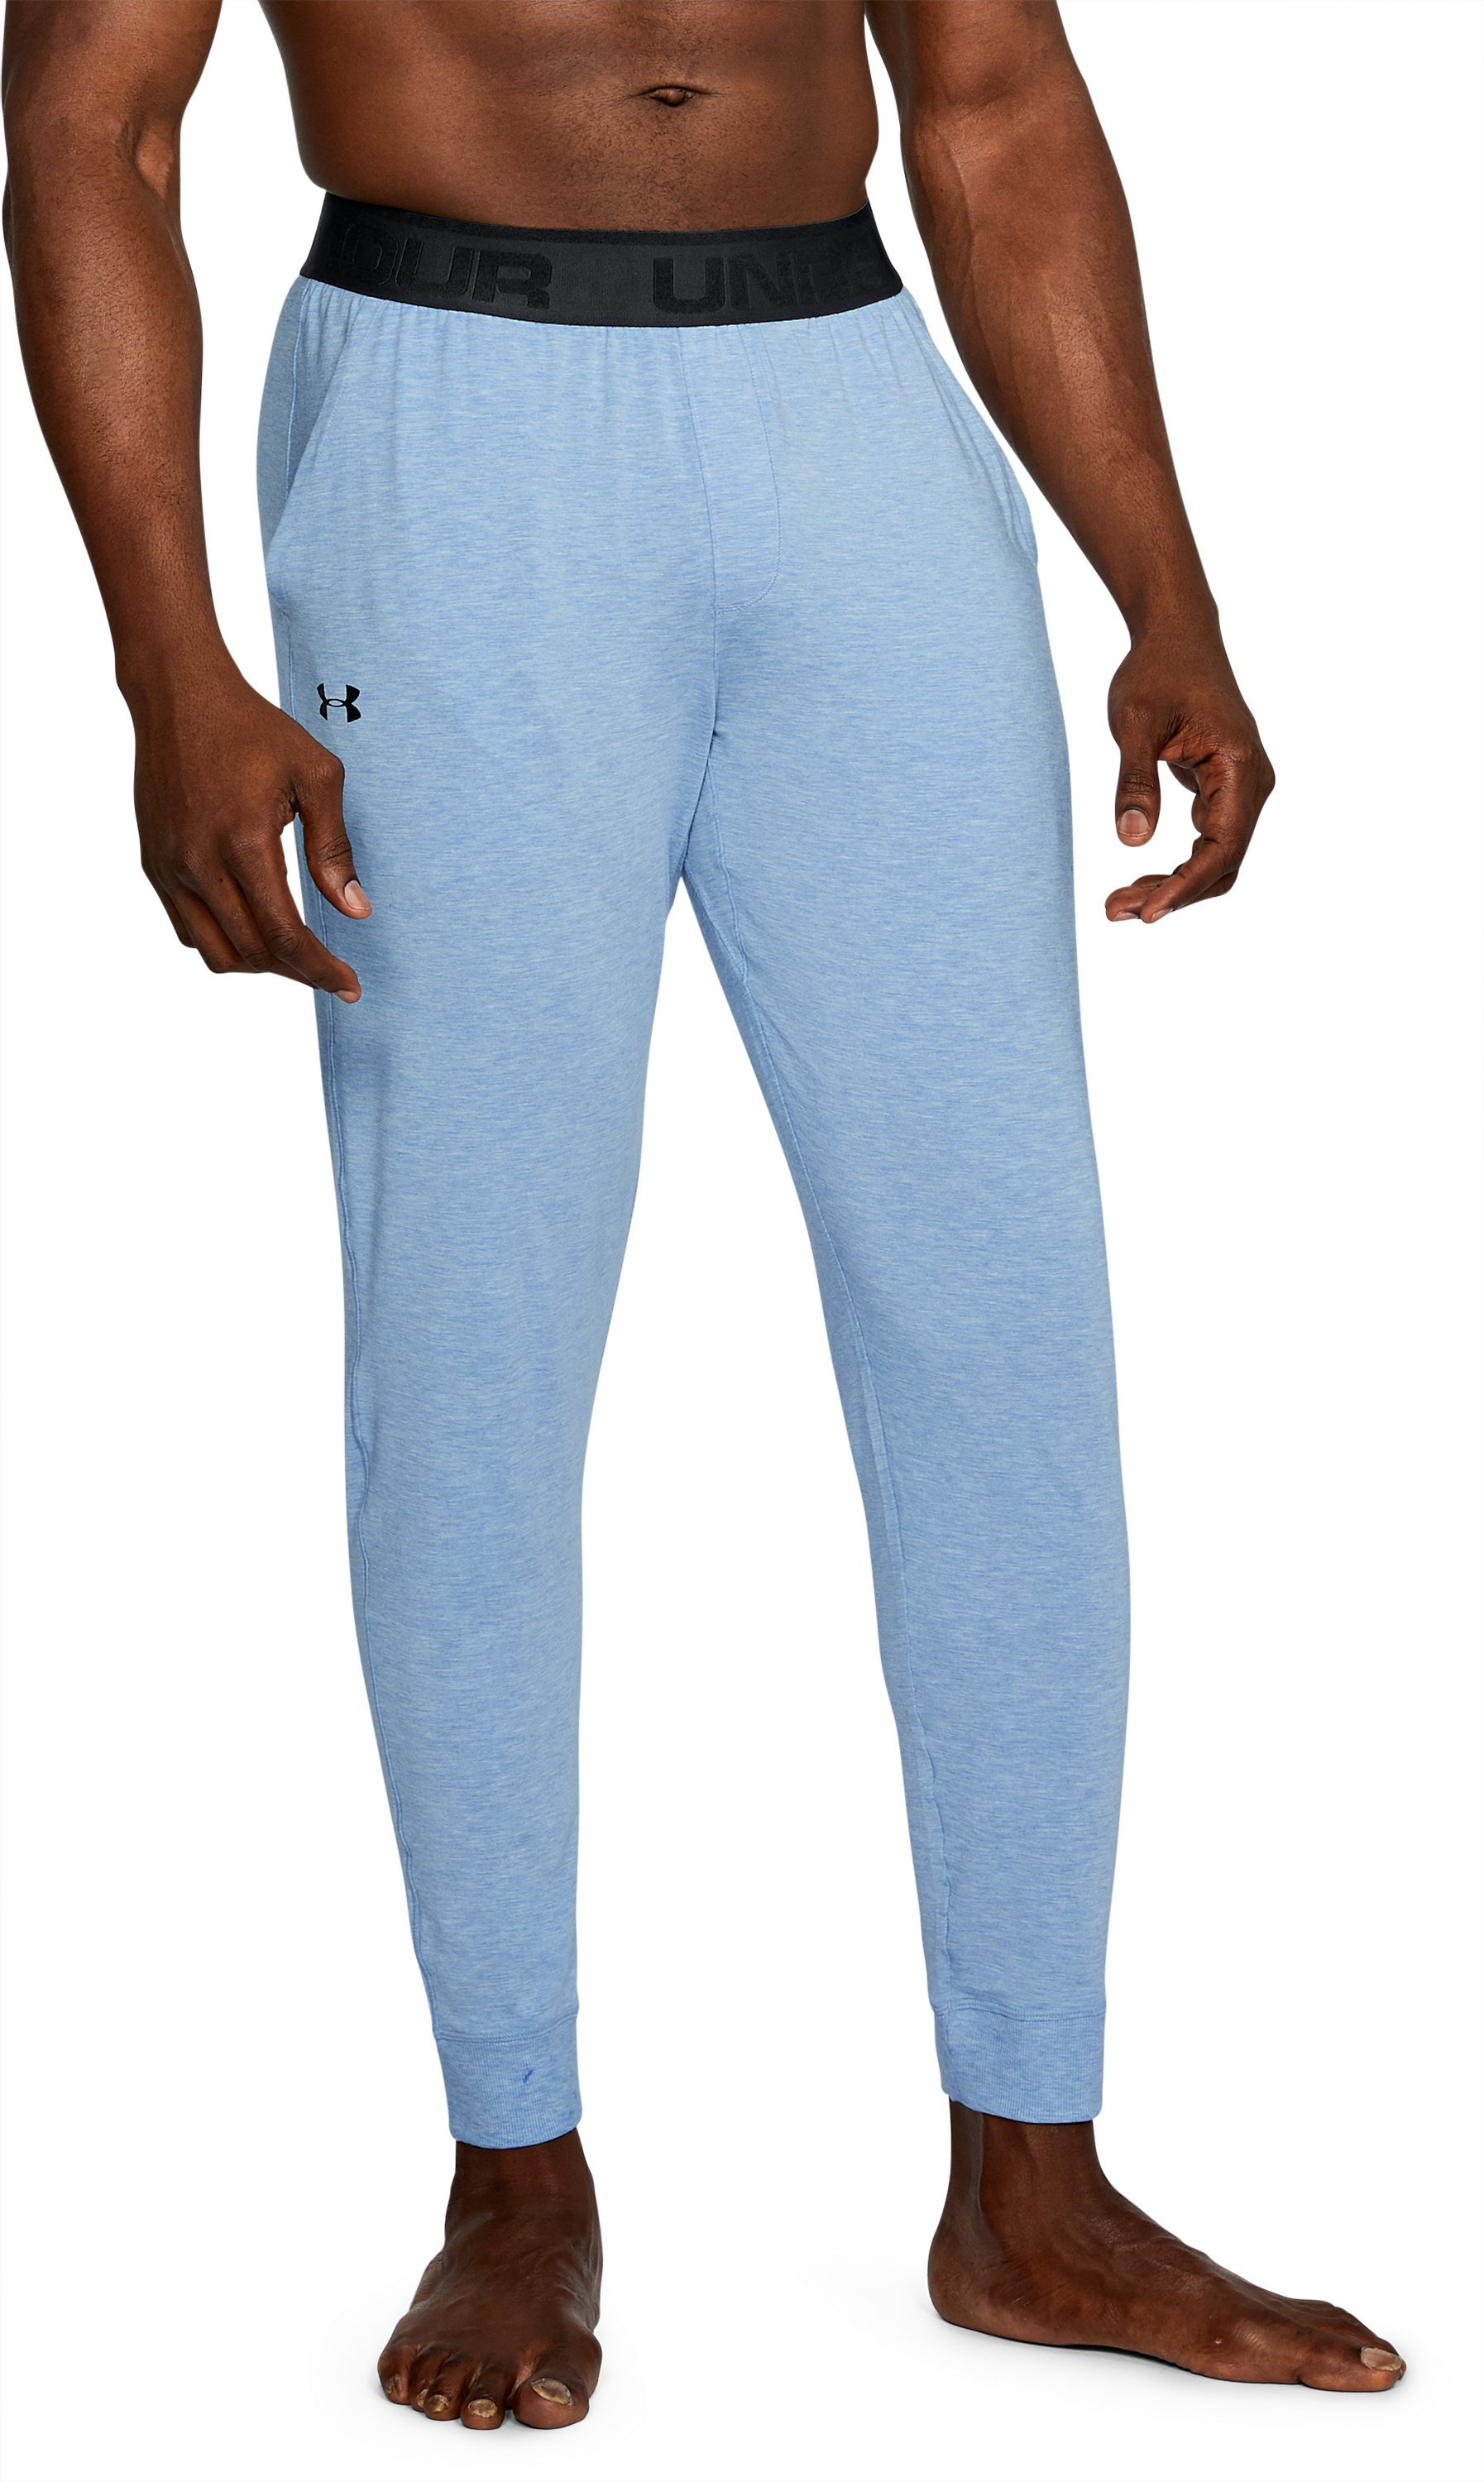 Men's Athlete Recovery Ultra Comfort Sleepwear Pants, WATER MEDIUM HEATHER